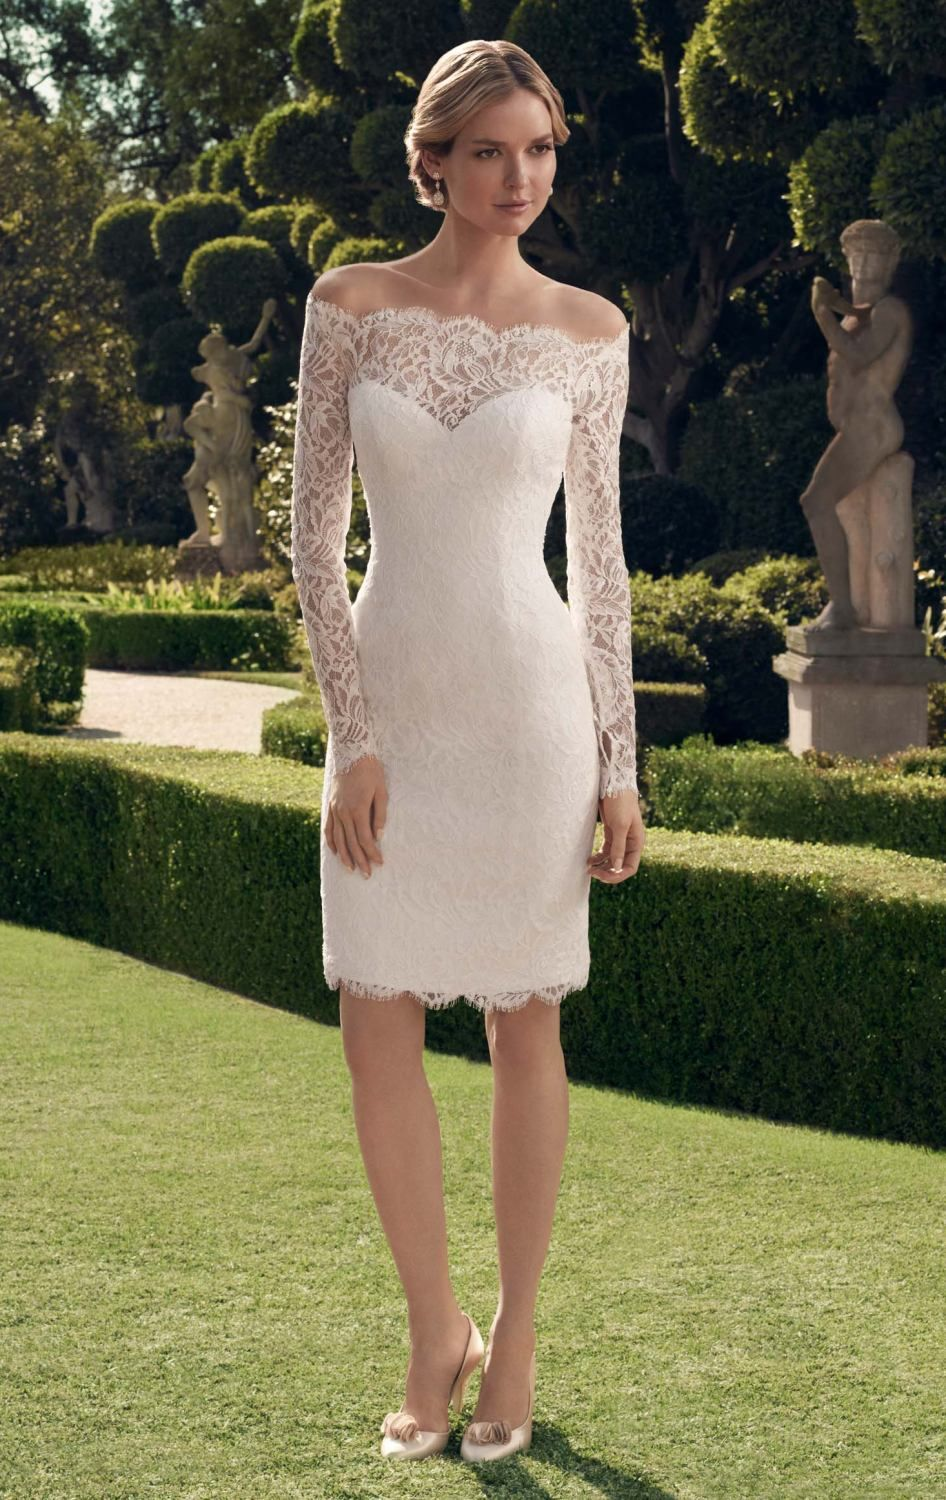 Fabulous And Stunning Sheath Off The Shoulder Wedding Dress